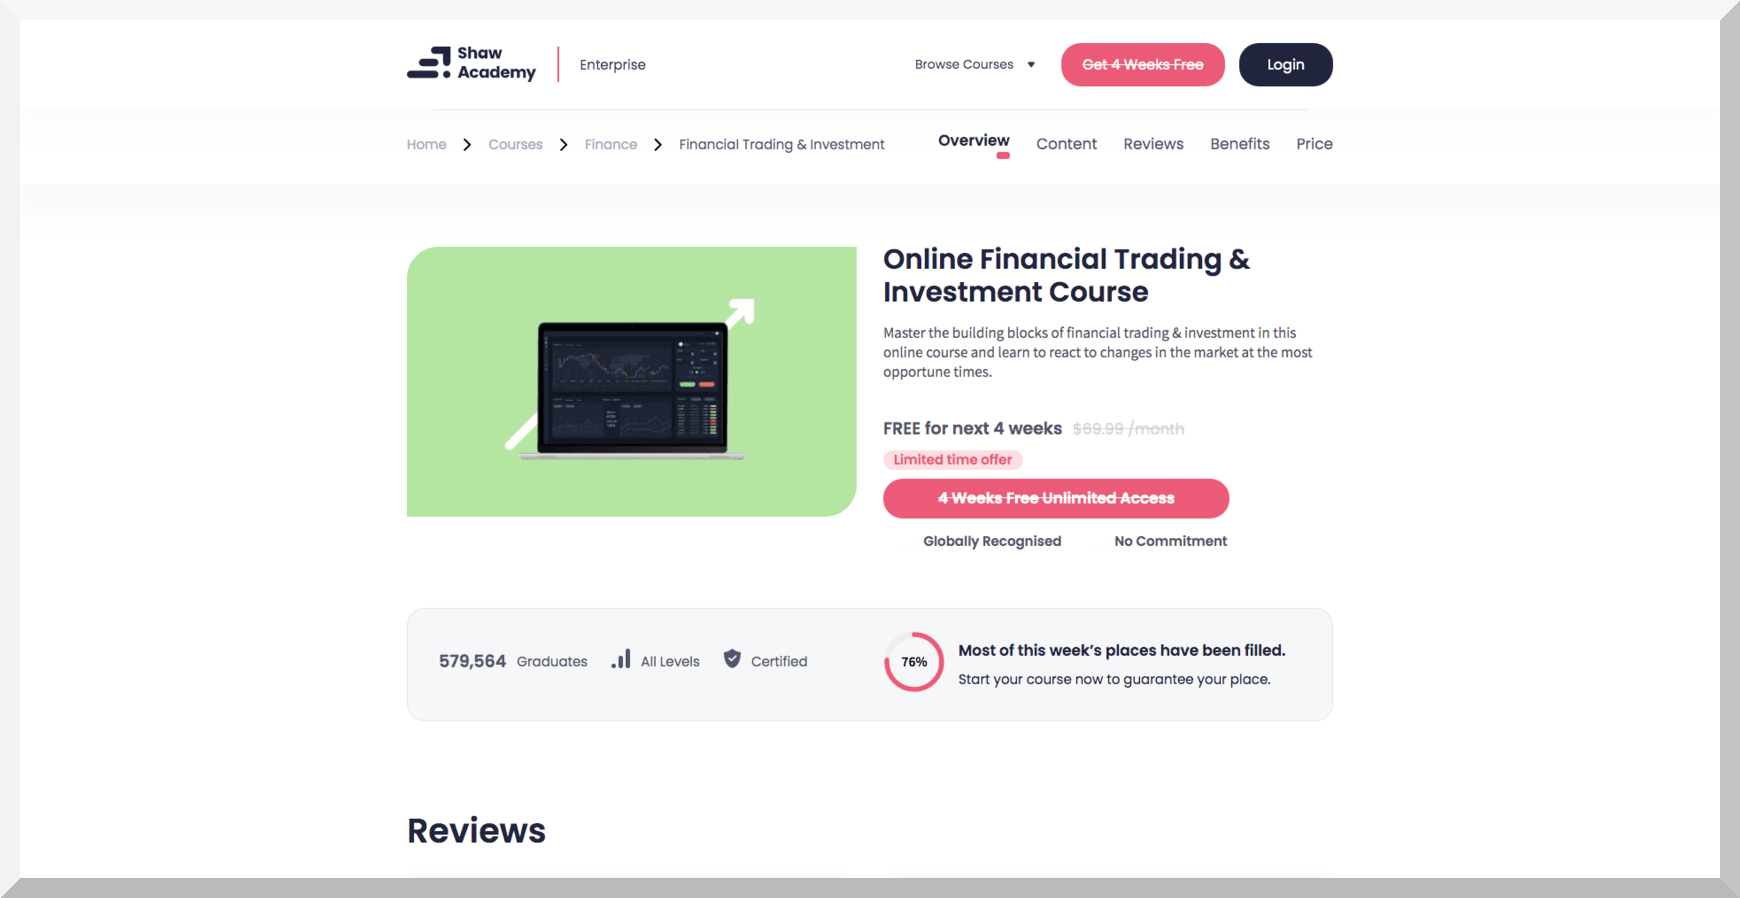 Online Financial Trading and Investment Course – Shaw Academy